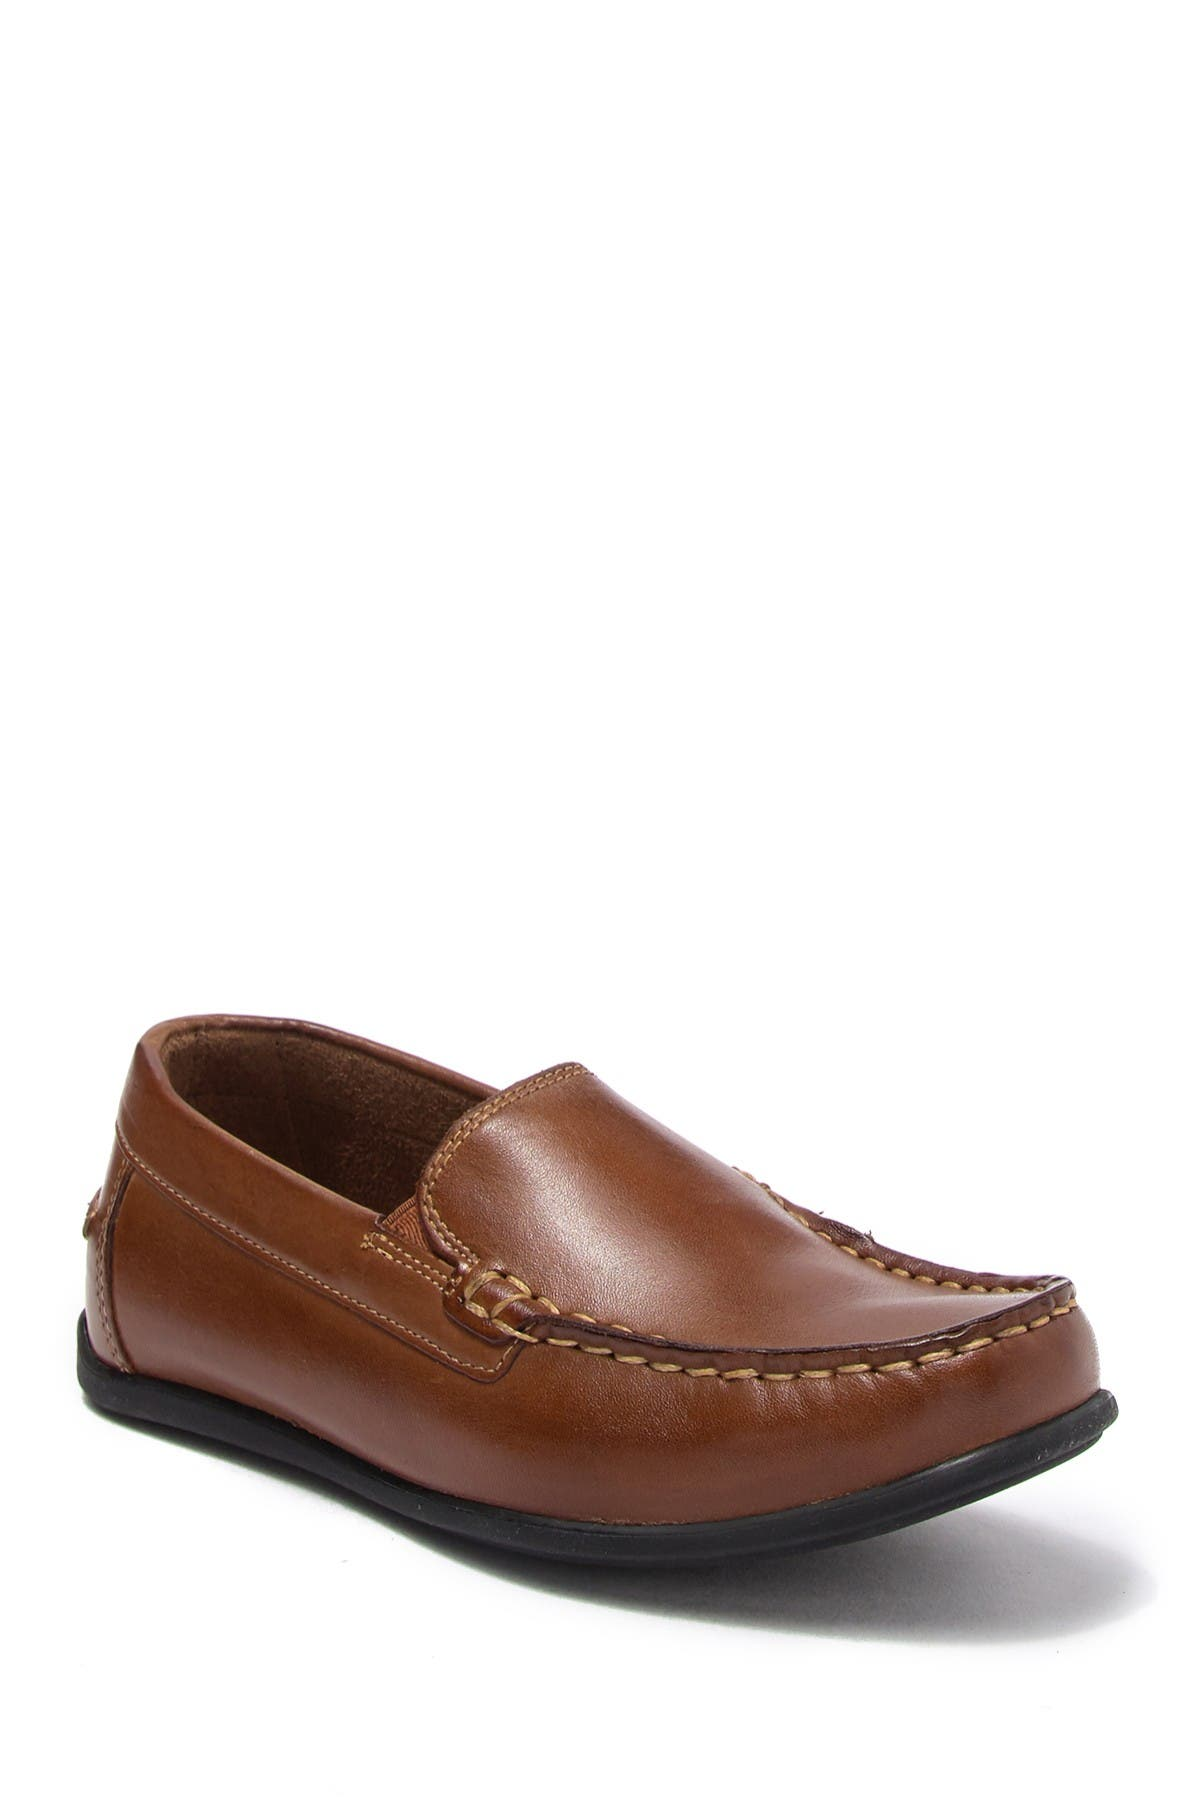 Image of Florsheim Jerod Leather Venetian Loafer